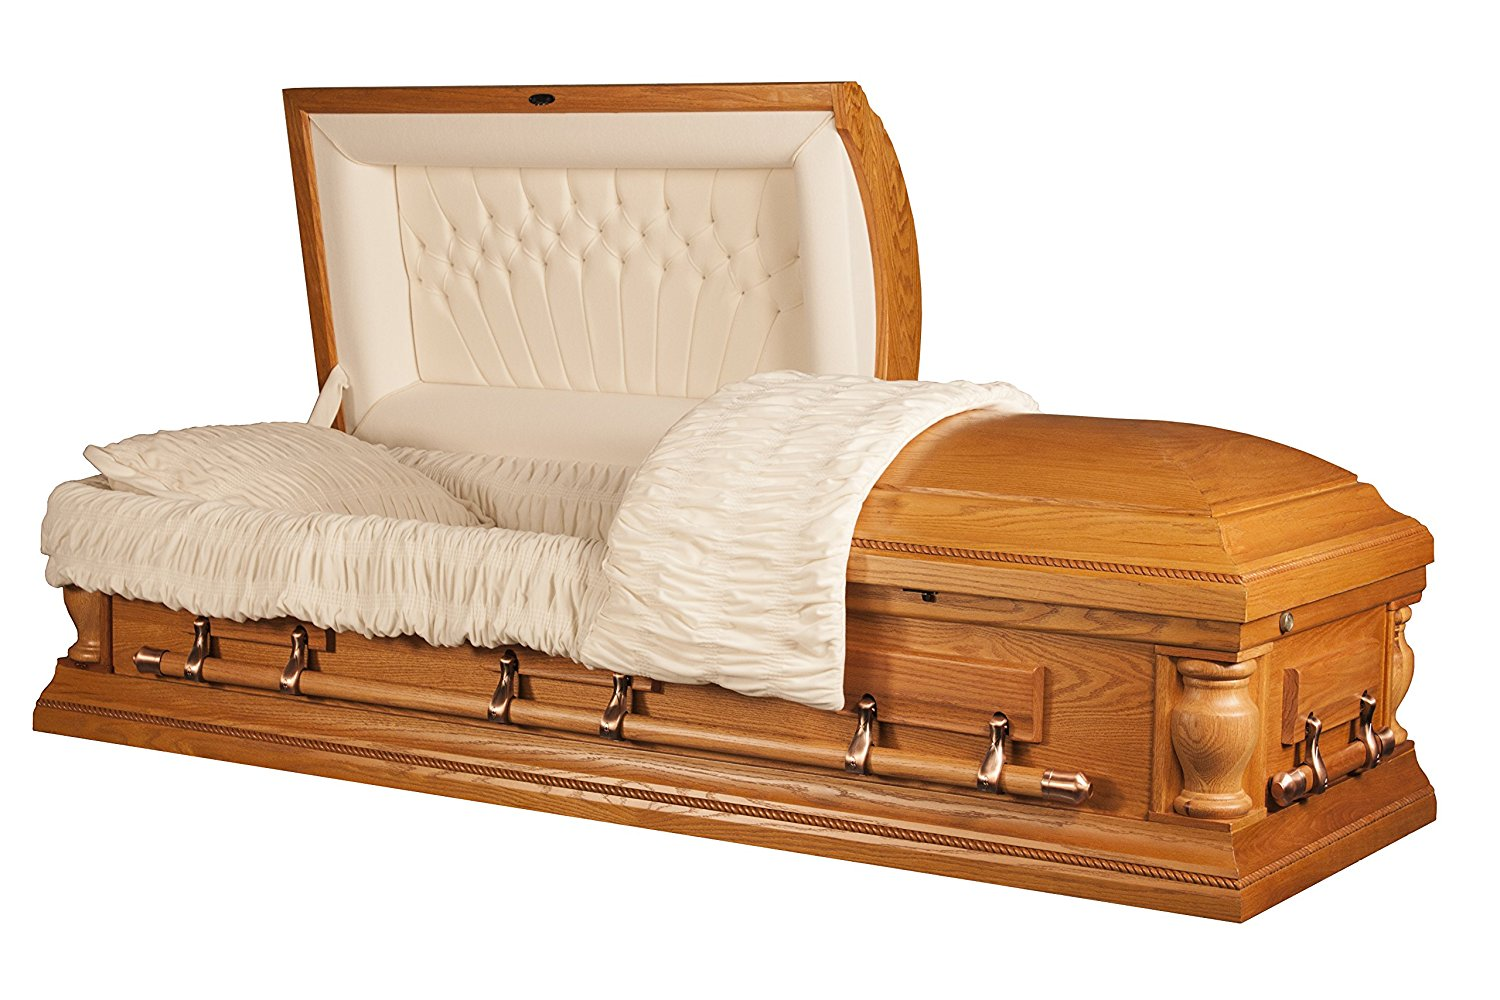 containers prices with Funeral Caskets Urns on Funeral Caskets Urns furthermore Nsphoto as well Stock Image U S China American Chinese Trade Market Image17759451 likewise Exploding Infrastructure Automation Stack Ecosystem moreover Stock Image Snack Foods Containers Image6593841.